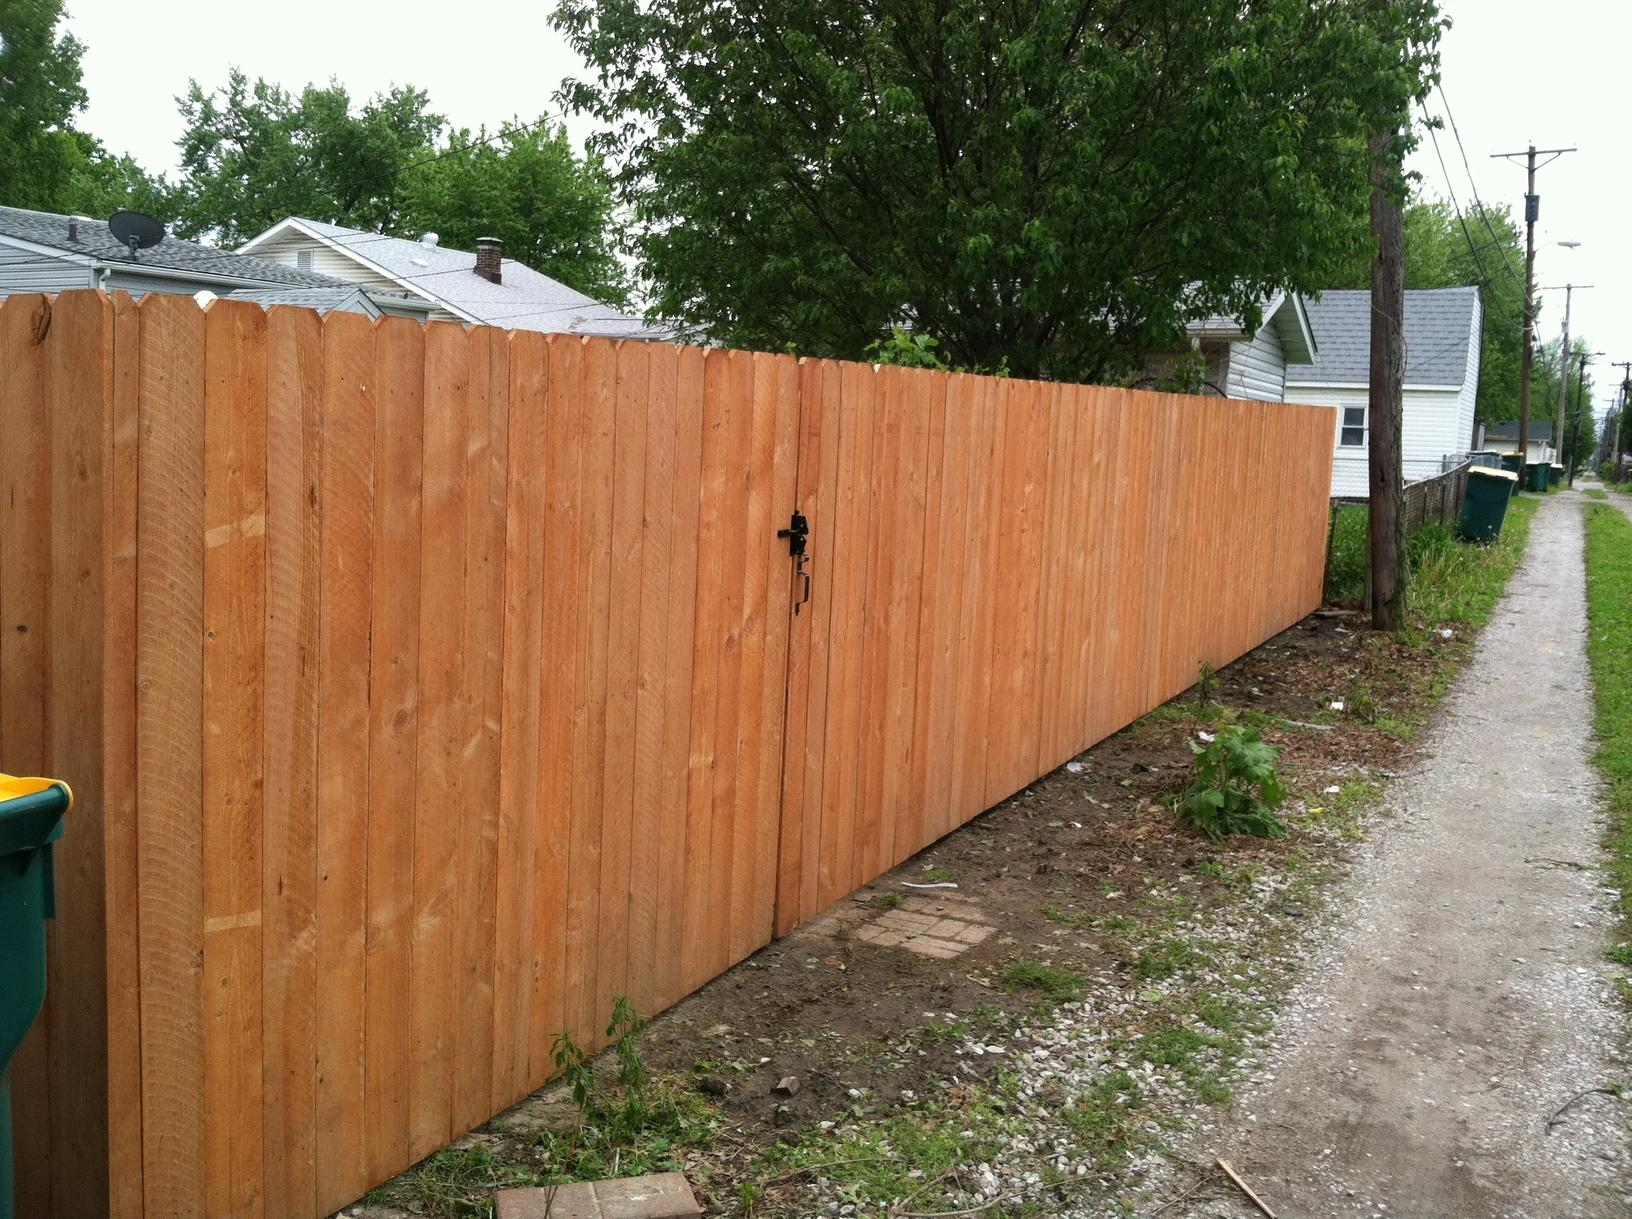 Wood Privacy Fencing Installed in Granite City, IL - After Photo